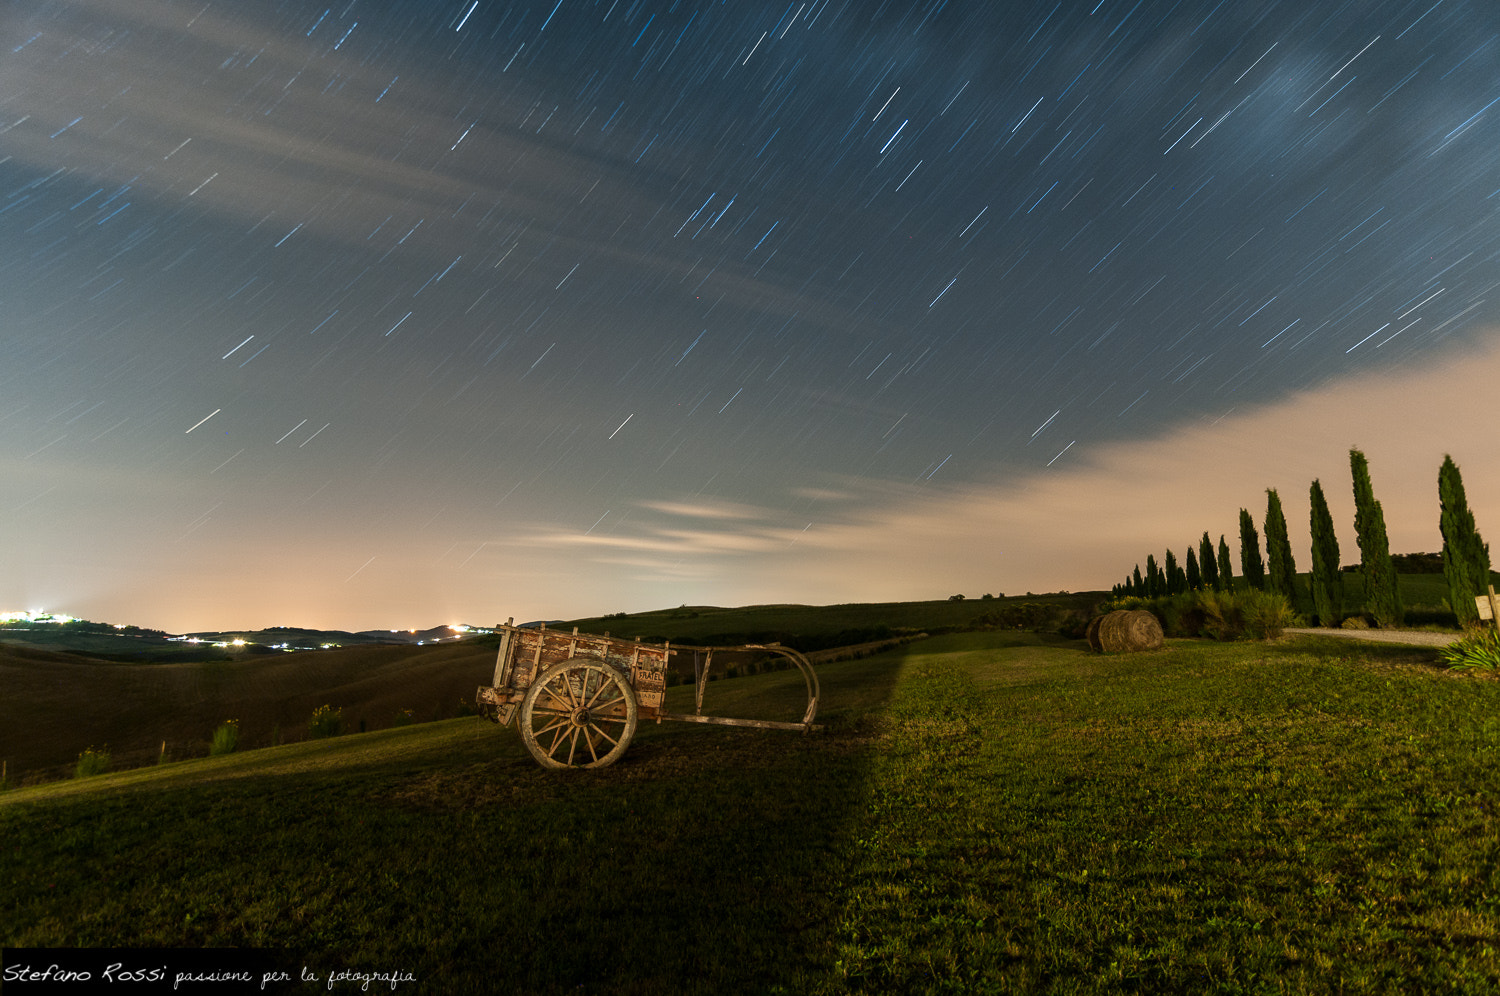 Photograph Startrail one shot by Stefano Rossi on 500px